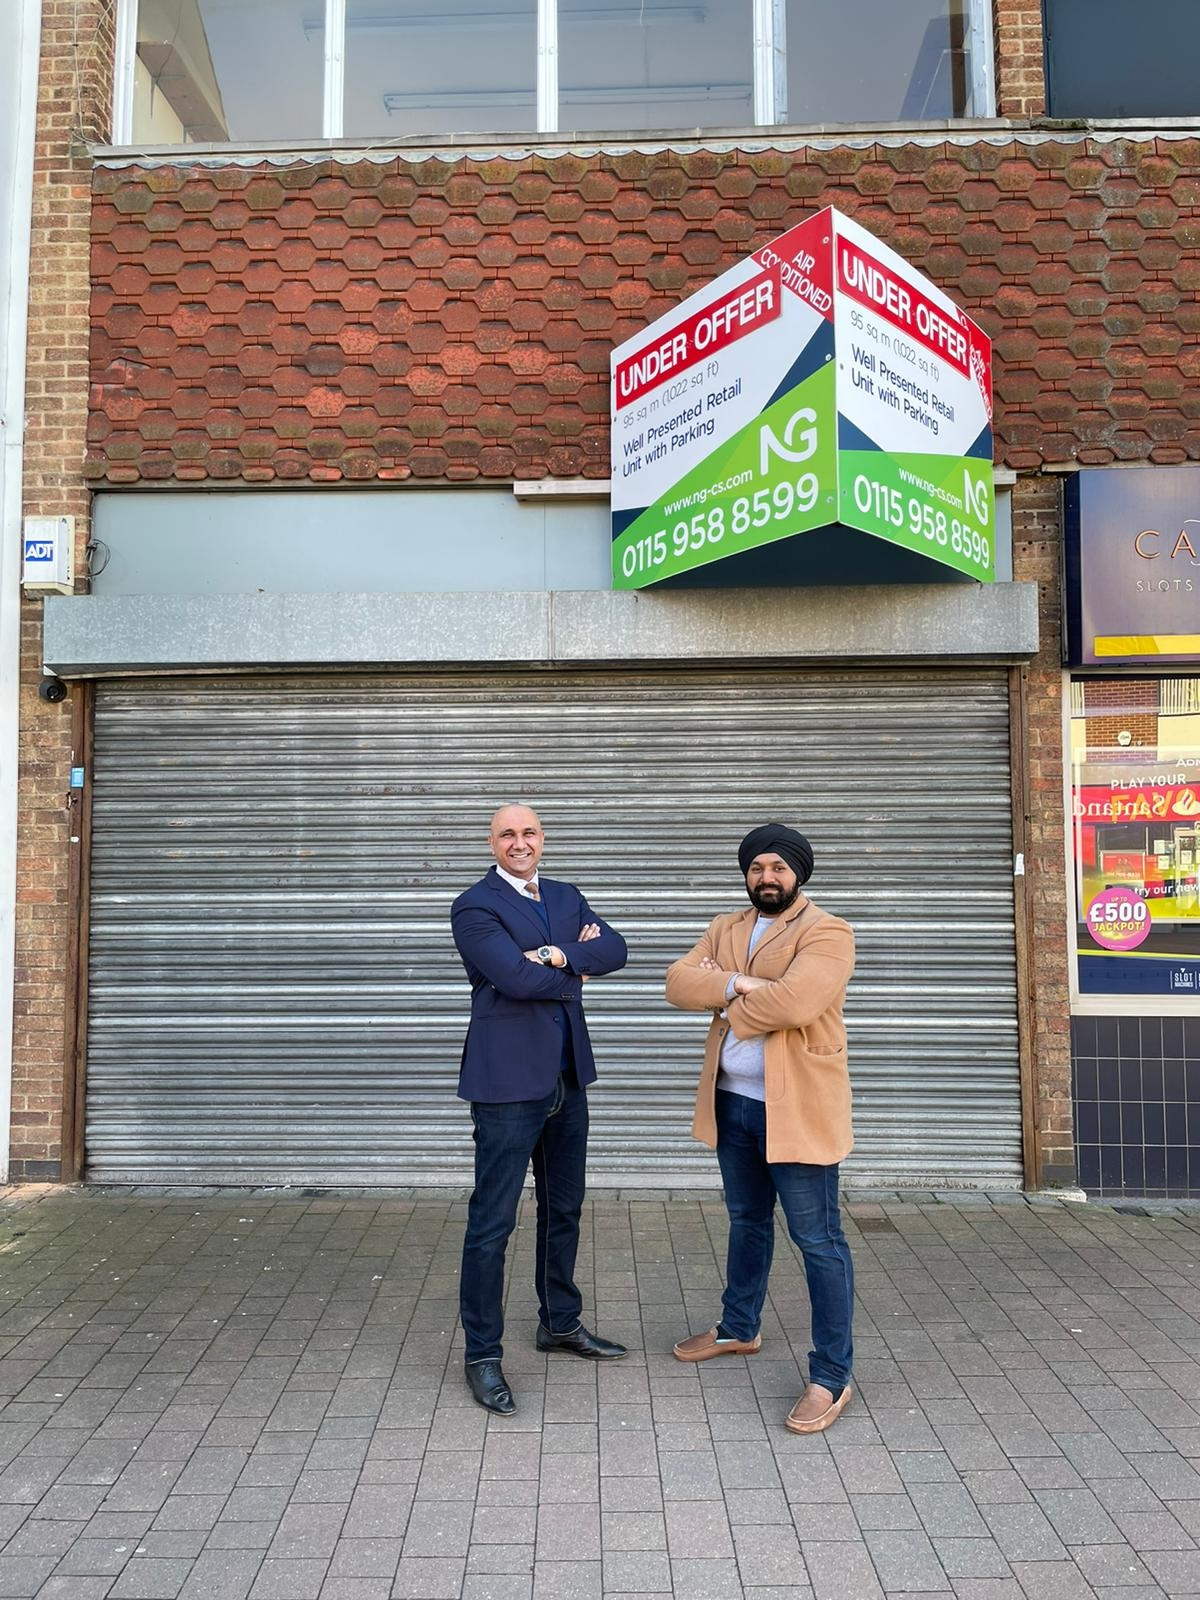 Catch of the day as NG provides retail boost for Nottingham